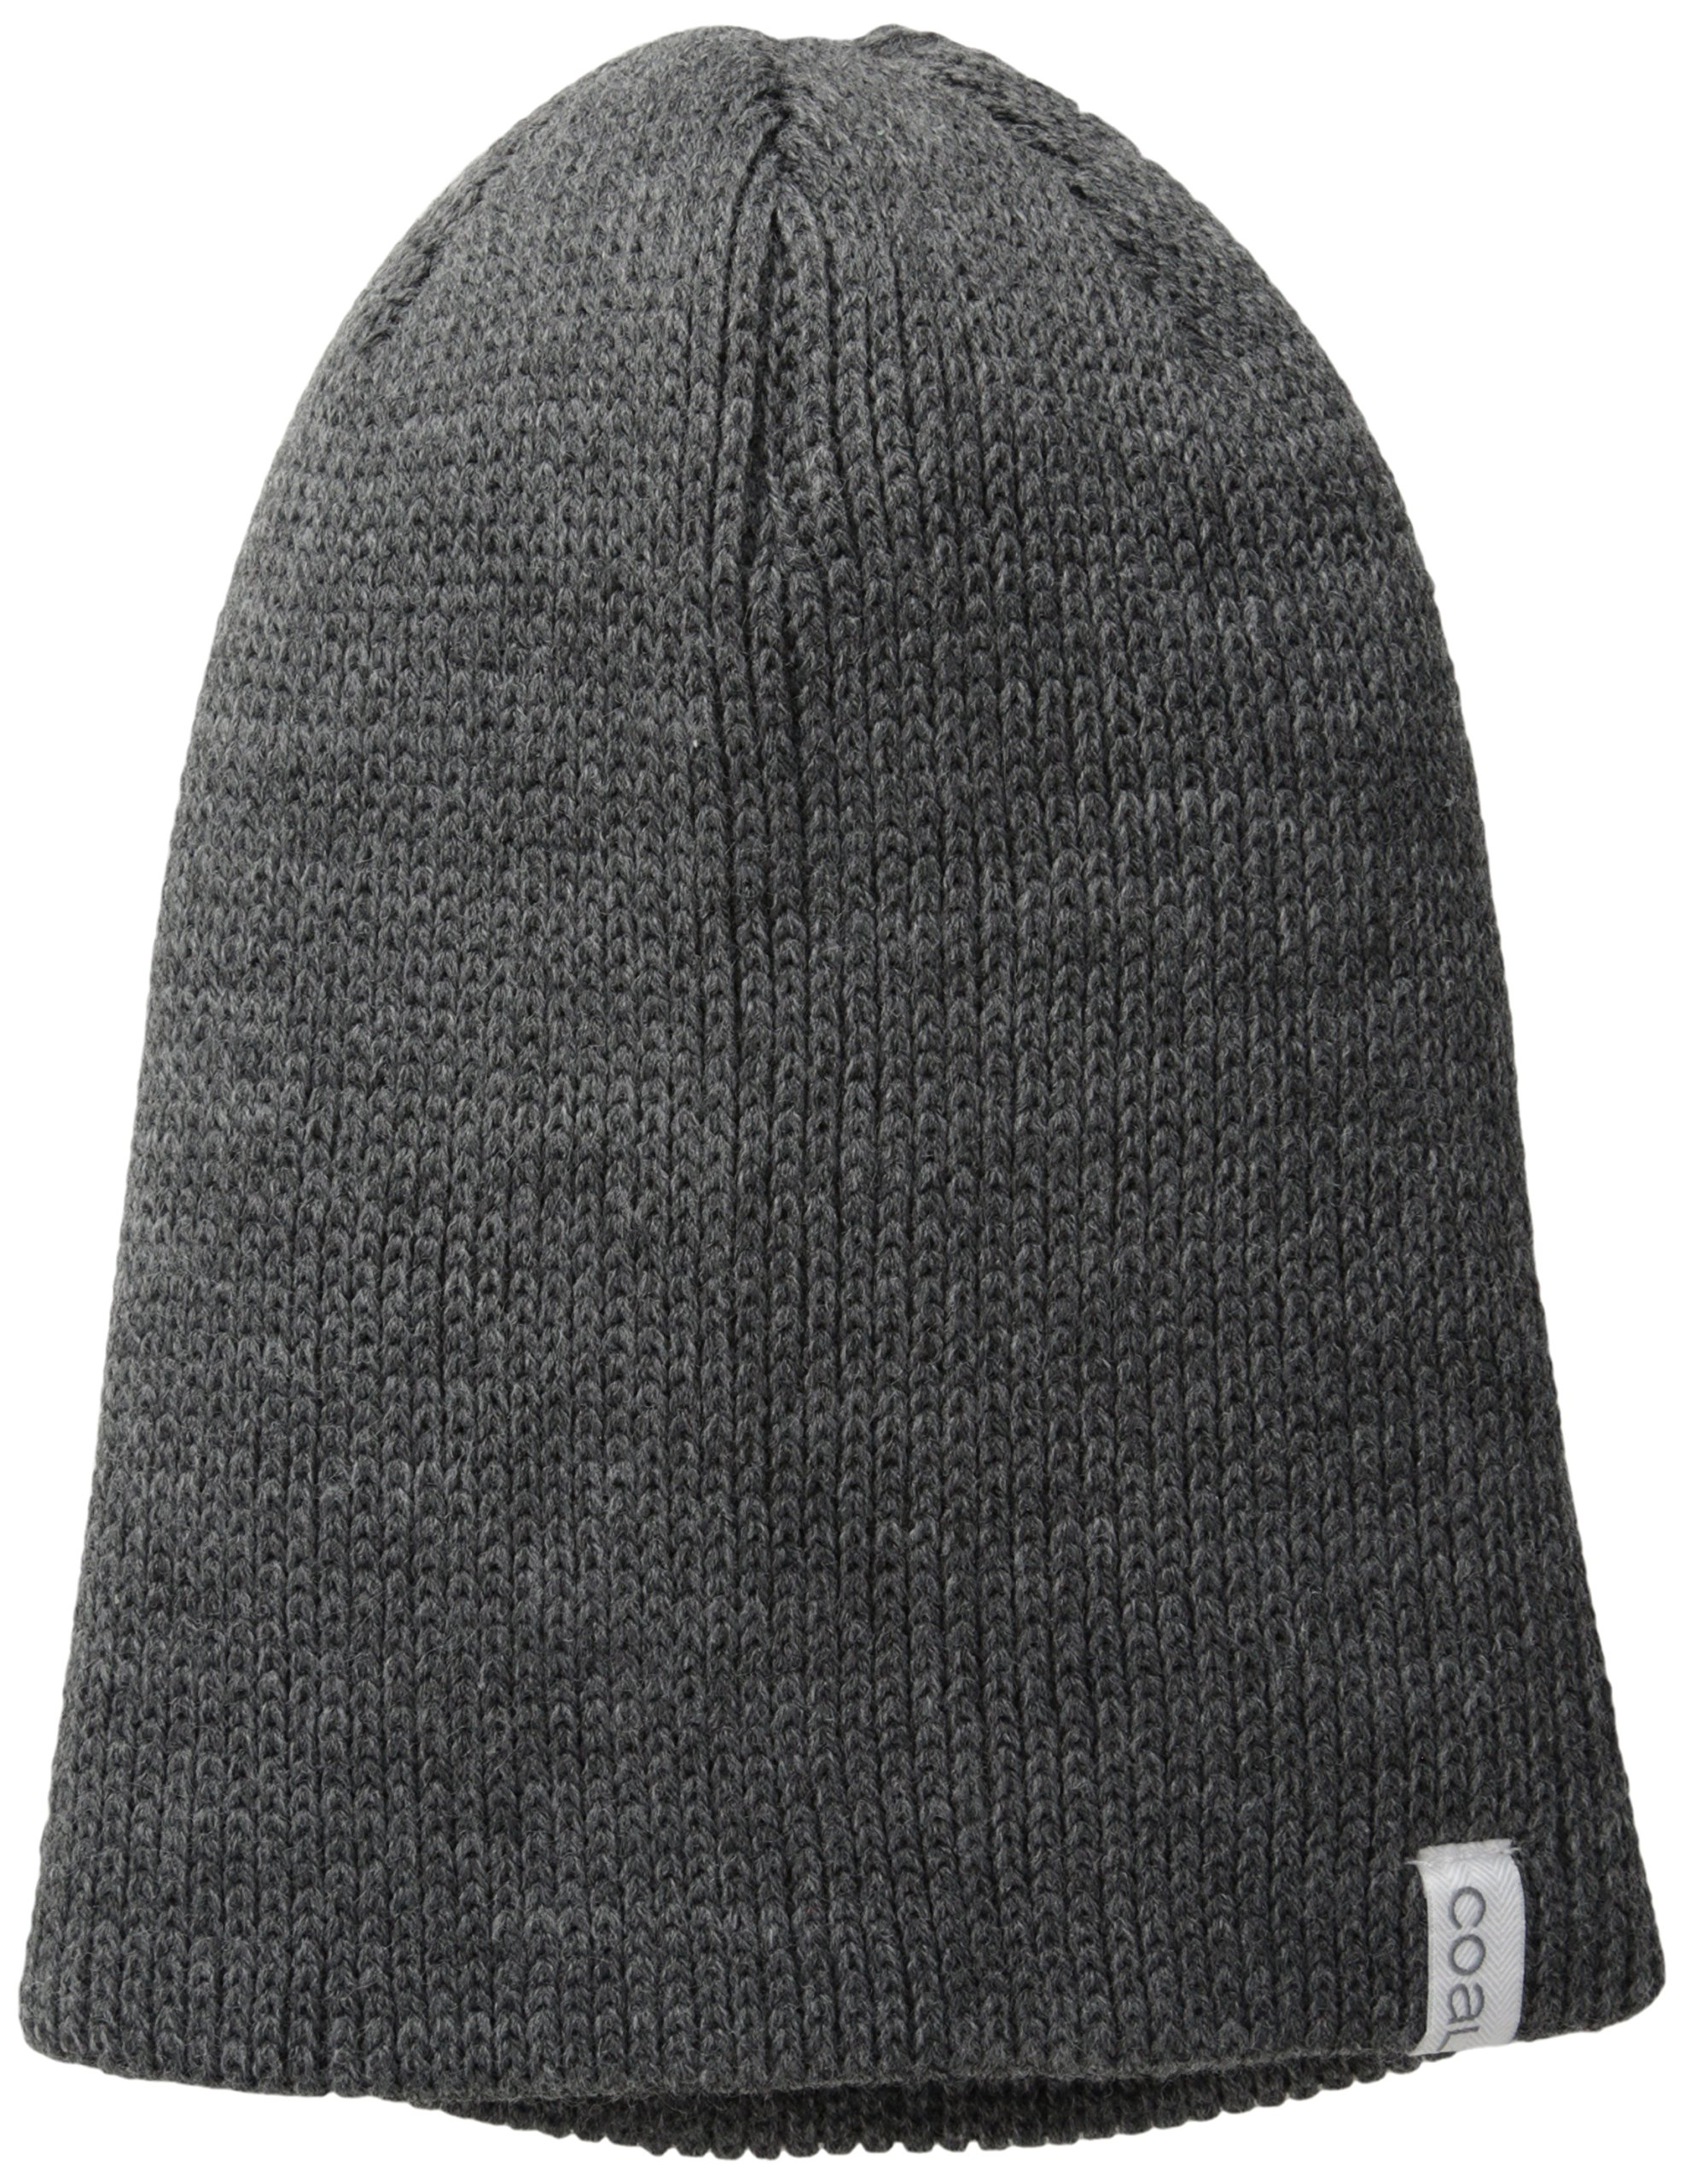 Coal Men's The Frena Solid Fine Knit Beanie Hat, Charcoal, One Size